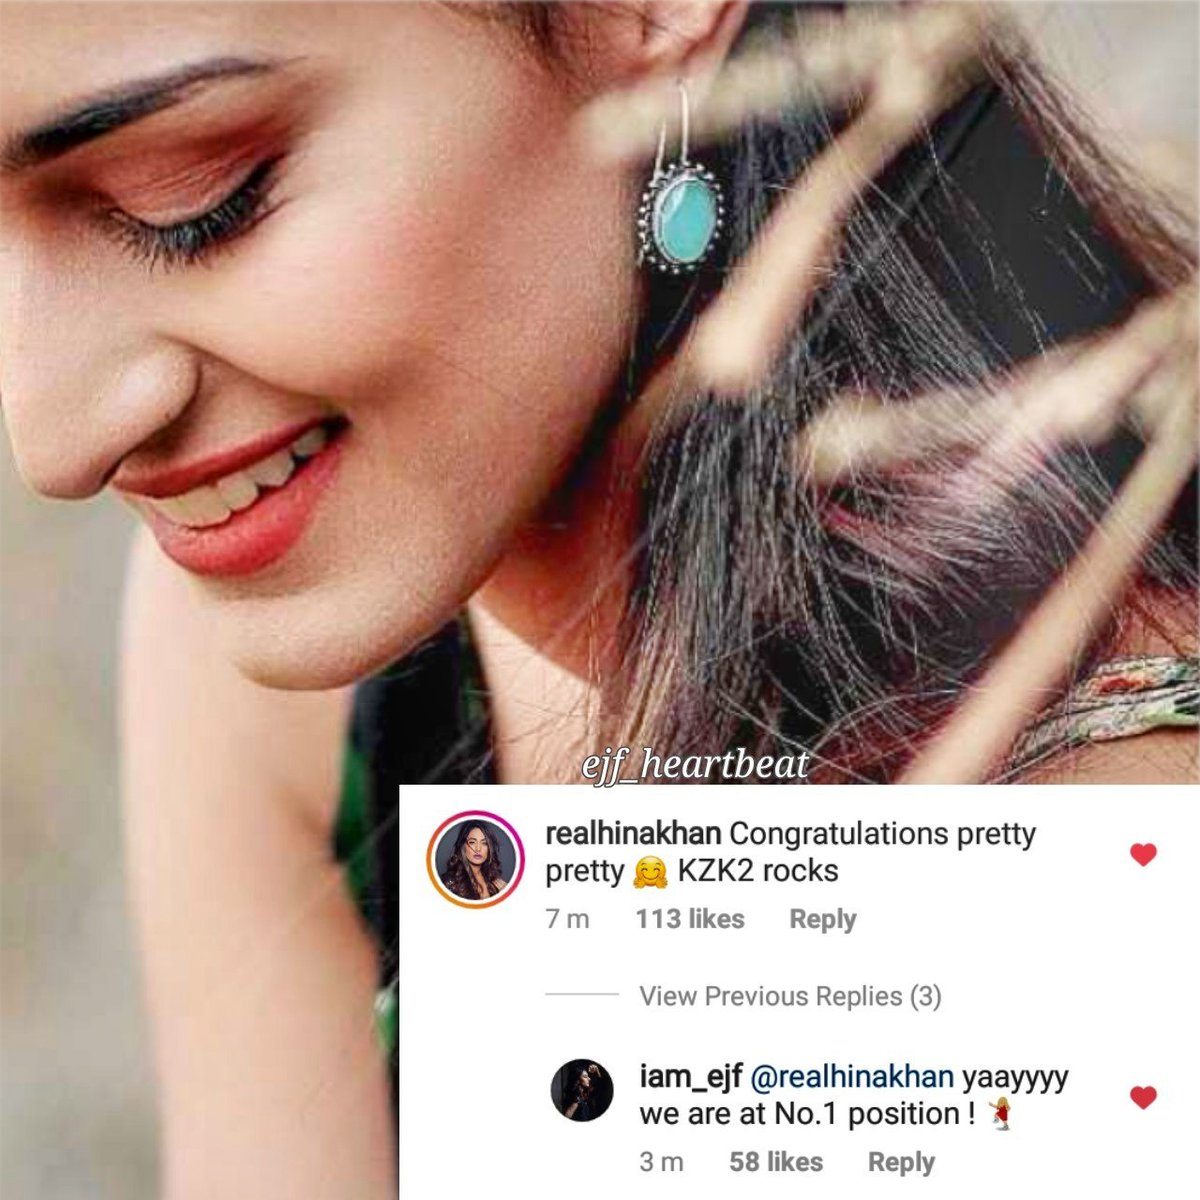 Congratulations To The Entire Team Of #KasautiiZindagiiKay For Been On No.1 Position !!   @eyehinakhan @IamEJF comment and reply   #PrernaSharmaBasu #EricaFernandes #EjF #HinaKhan #Komolika #Prelika<br>http://pic.twitter.com/gdscdIA3wd